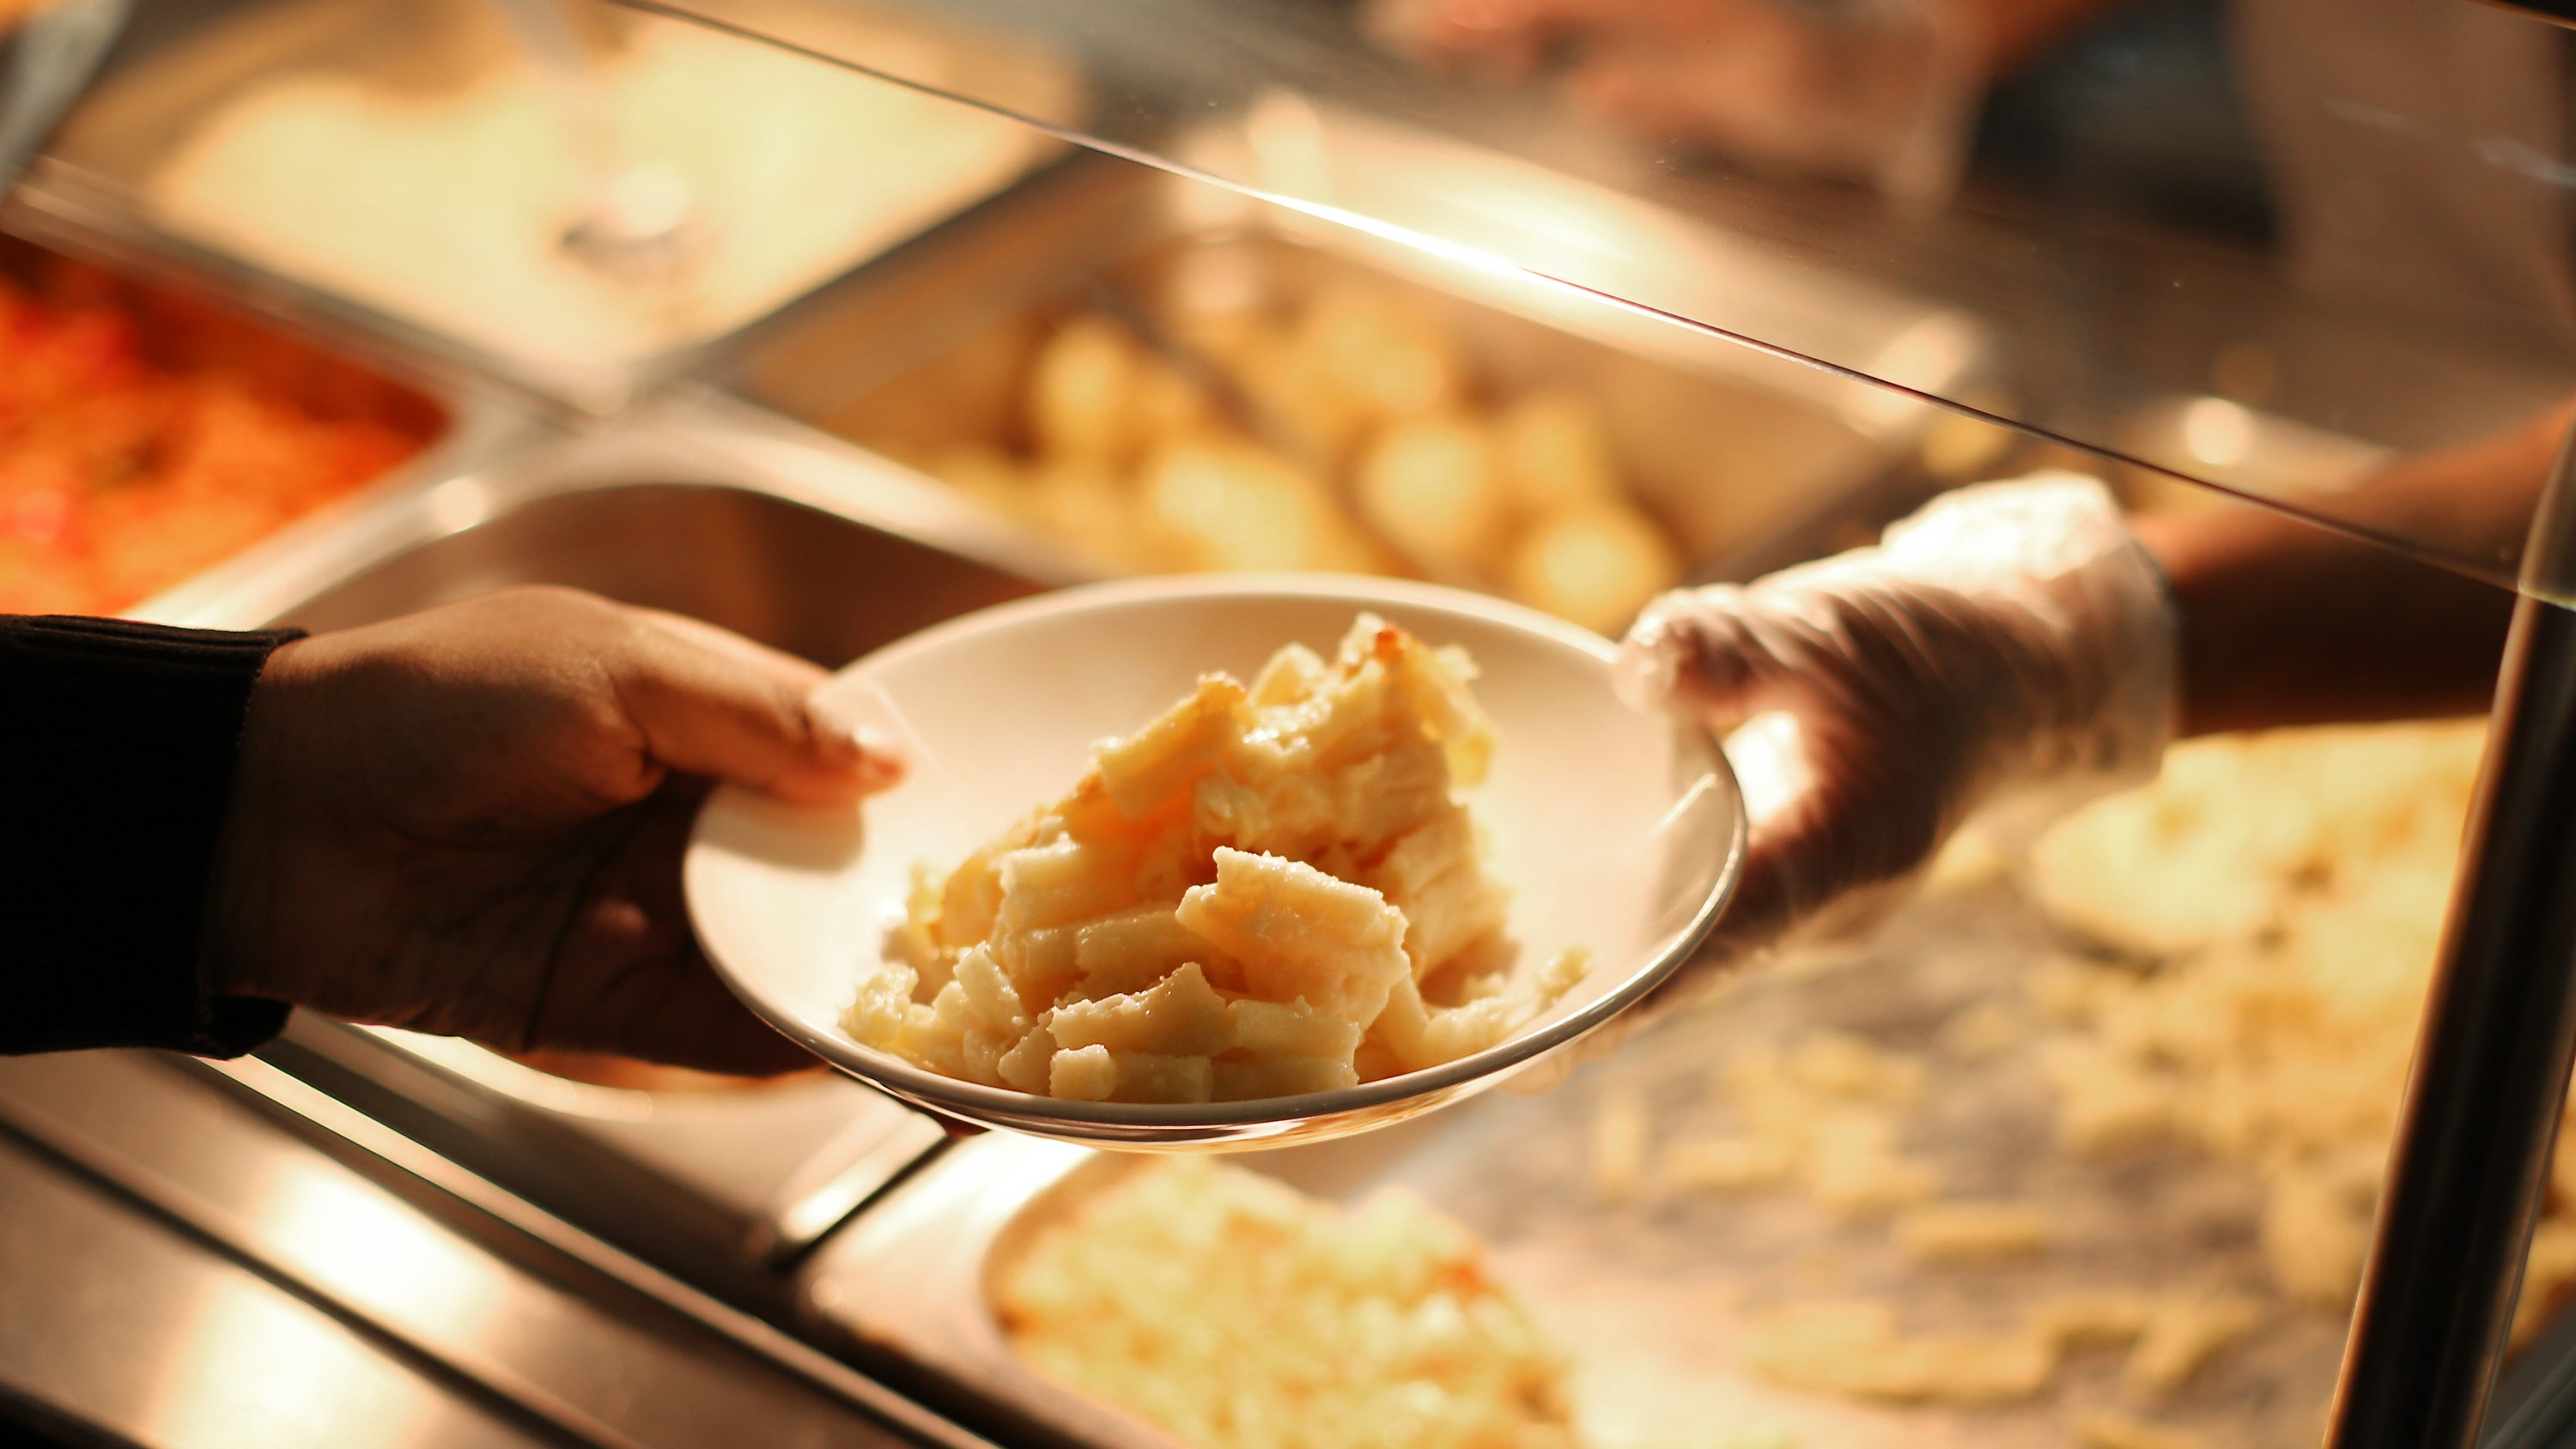 Many US Restaurant Meals Come With A Side Of Hormone-Disrupting Phthalates